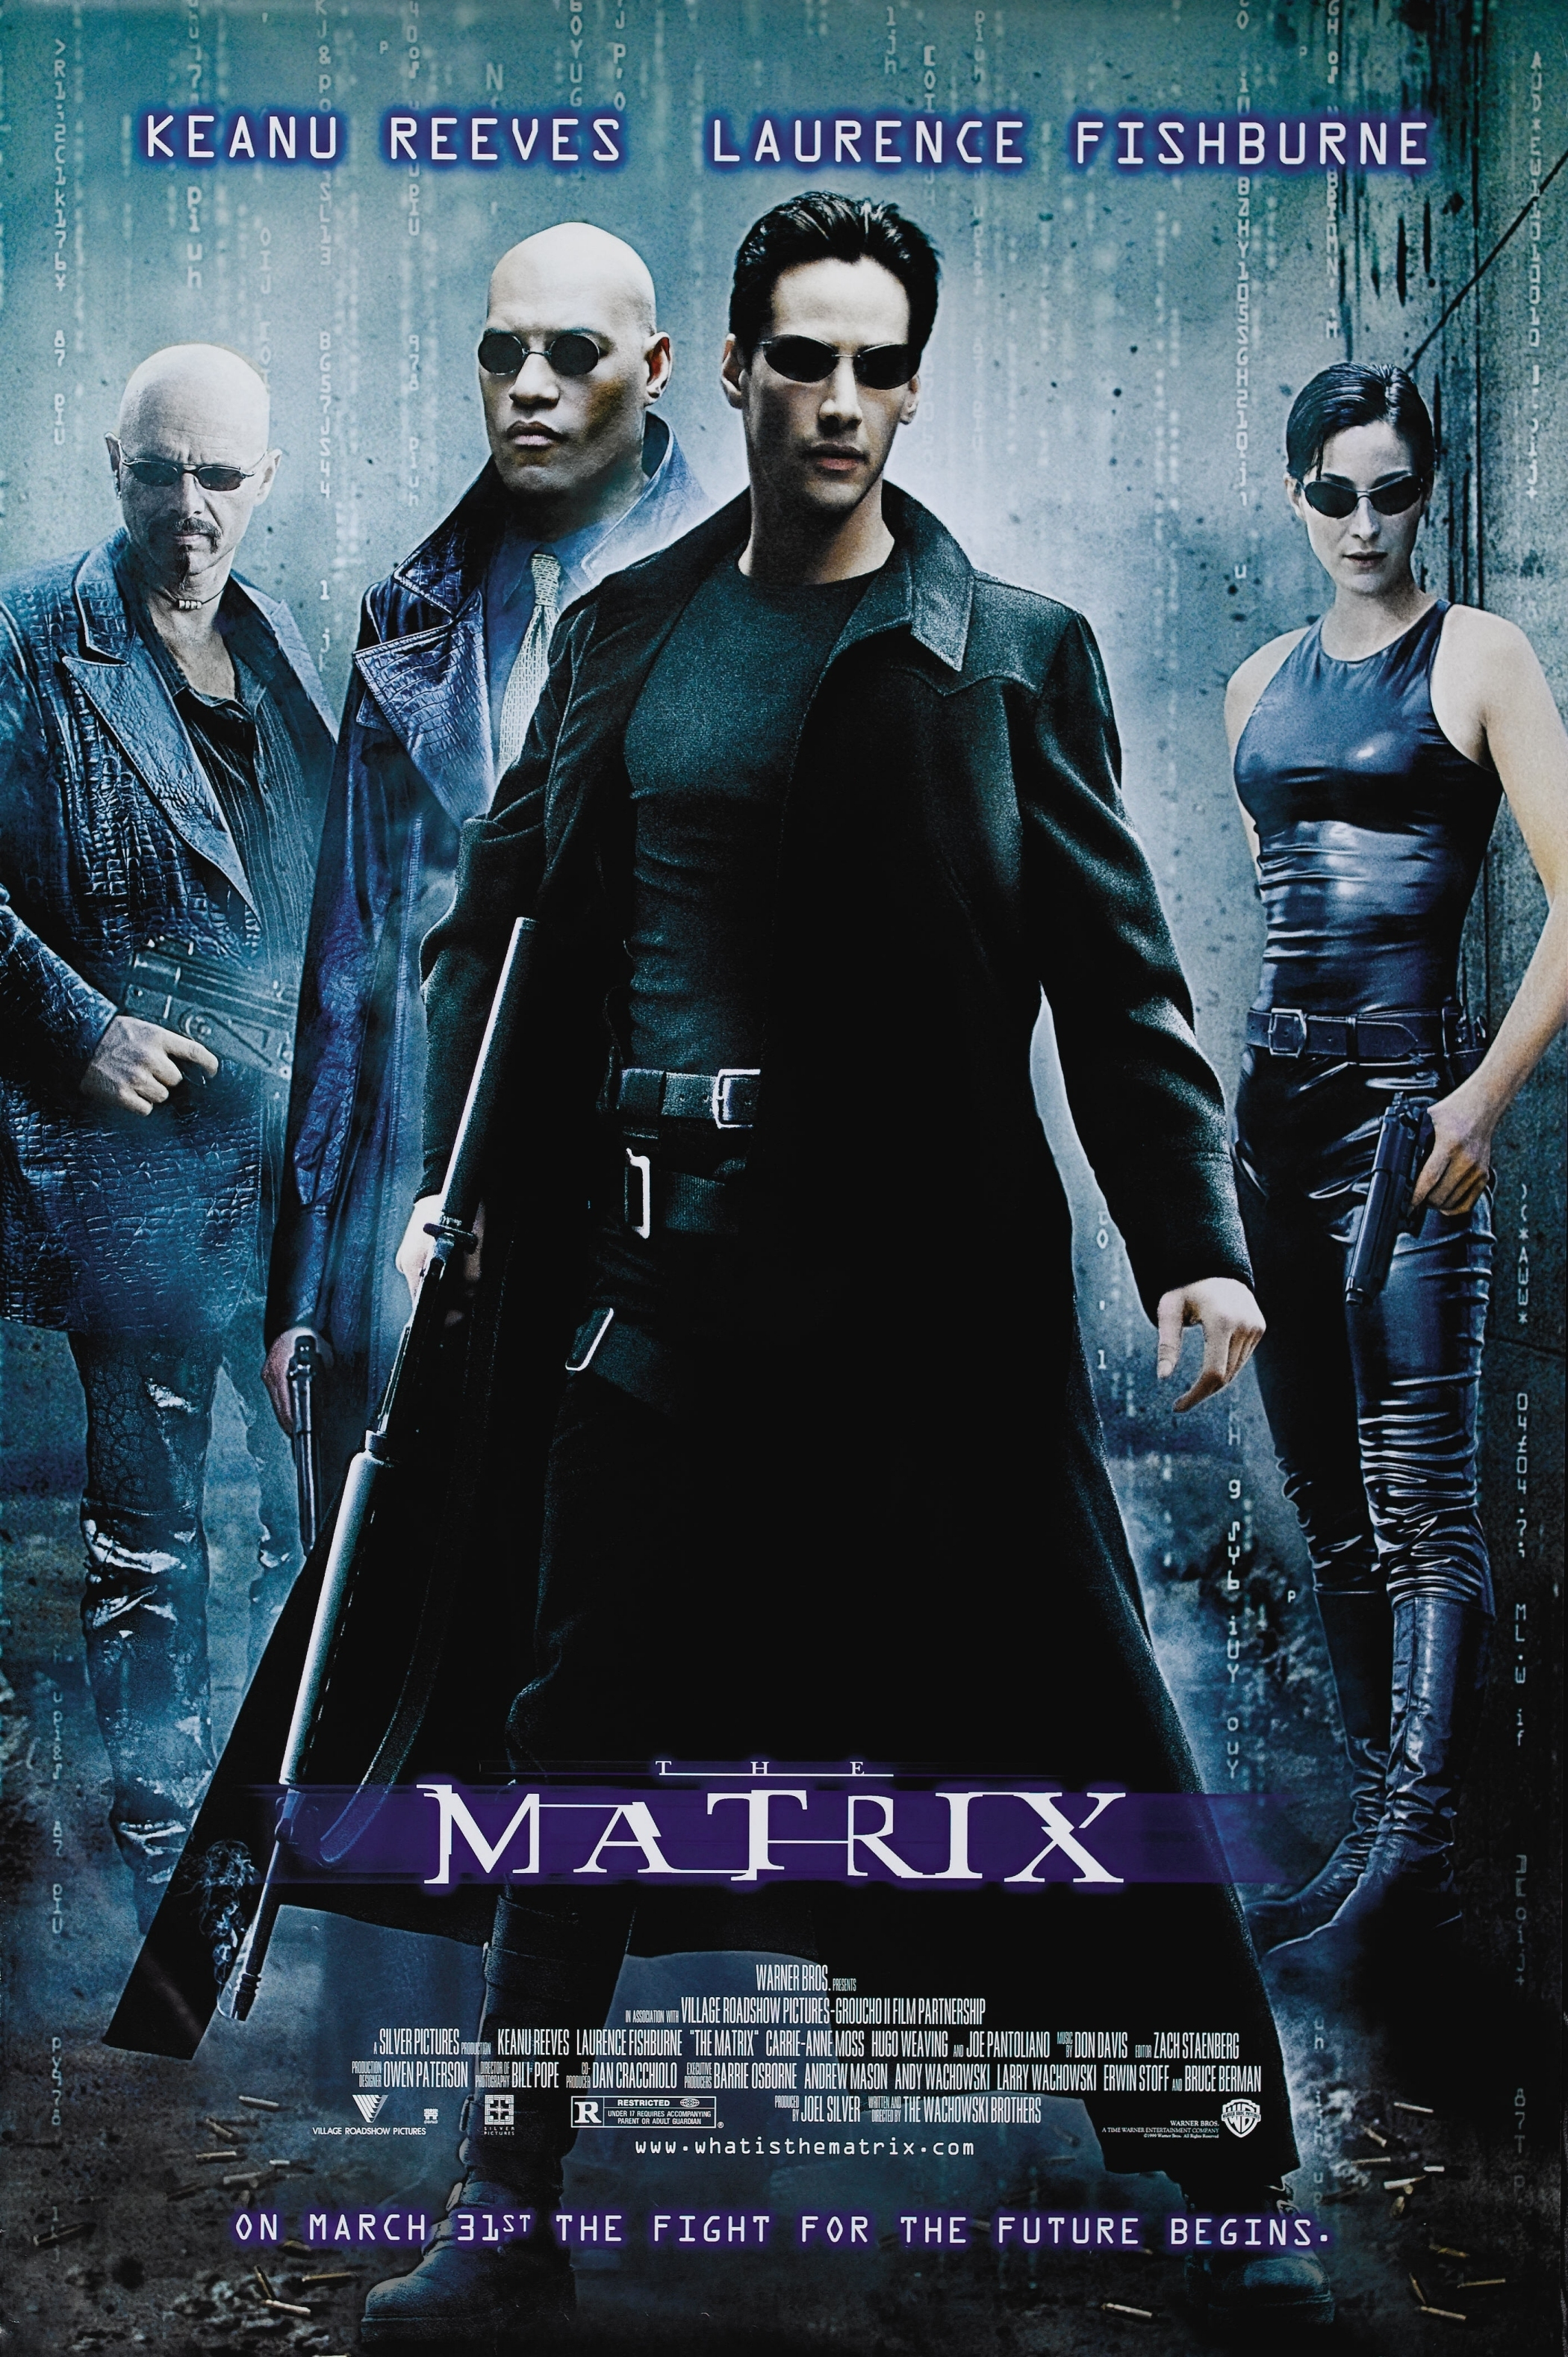 Image result for the matrix poster - source: https://www.google.com/search?q=the+matrix+poster&sxsrf=ACYBGNSDV_lA1RWaJMkHrX0ZY9PbjAldBw:1579164379645&source=lnms&tbm=isch&sa=X&ved=2ahUKEwi45o_f3YfnAhVNilwKHfStB1sQ_AUoAXoECA4QAw&biw=1500&bih=890&dpr=2#imgrc=OjxNLcxGzZJ3xM: